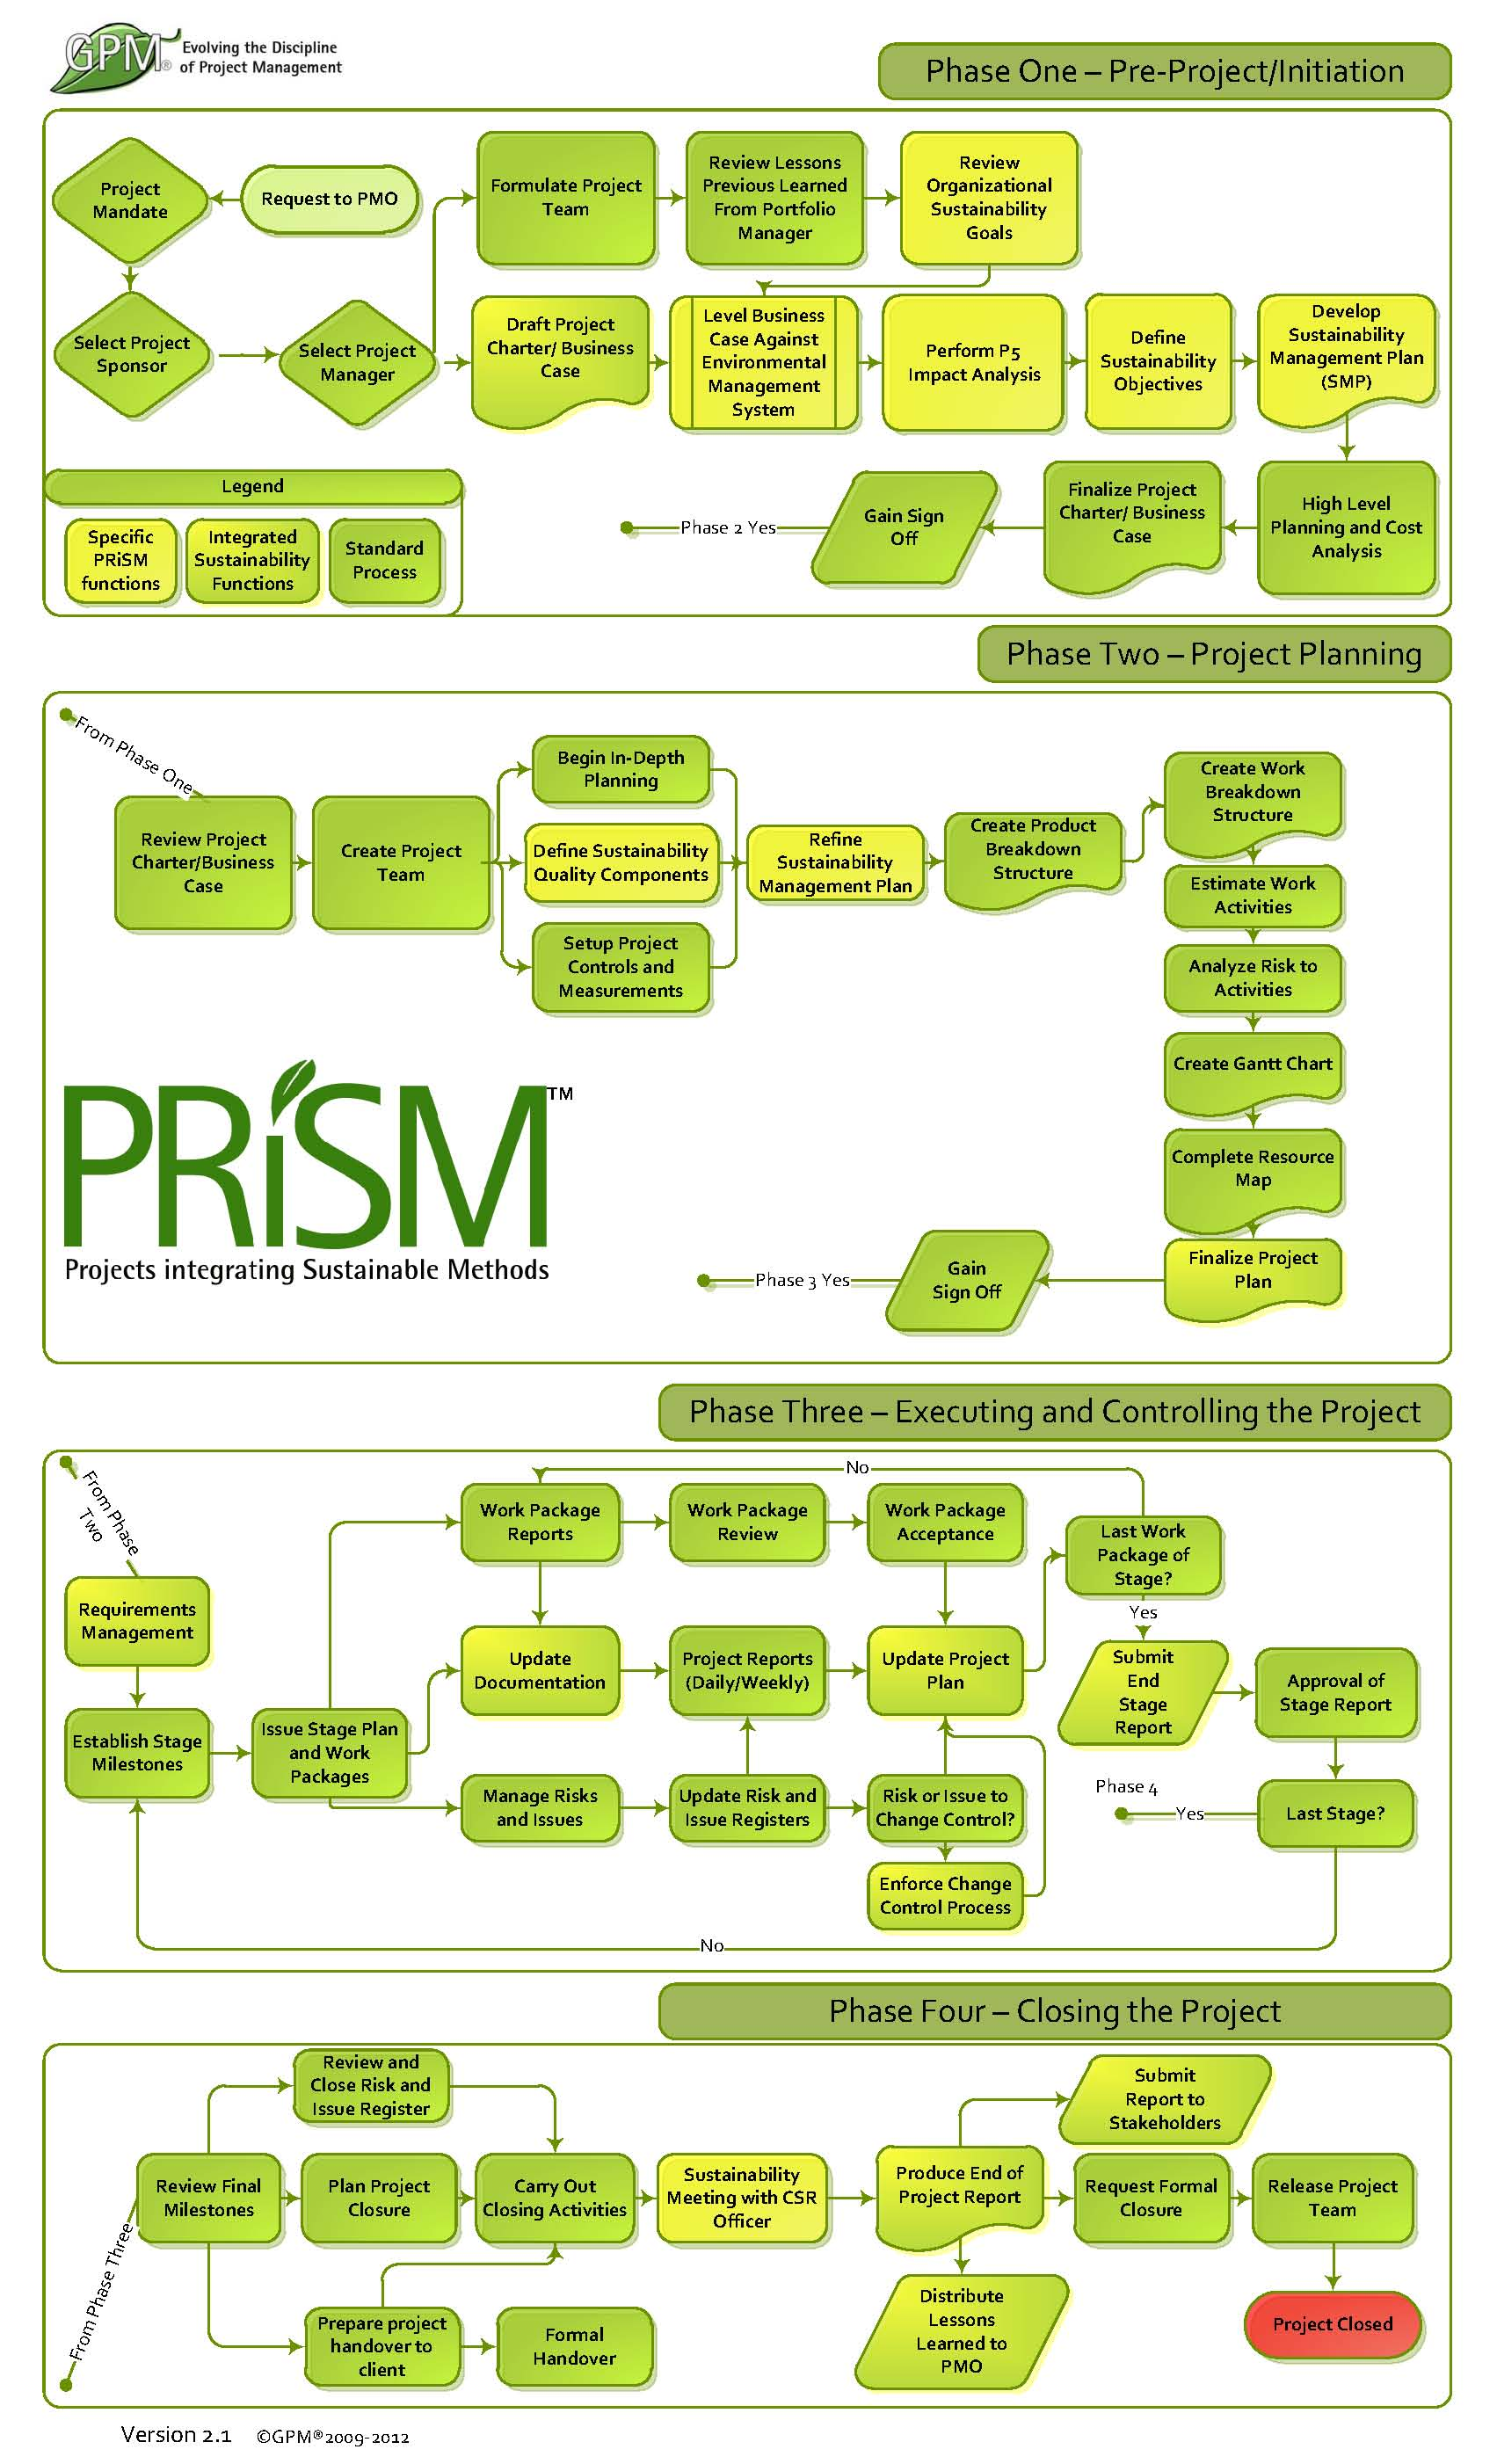 Gantt Chart Template: The PRiSM Flowchart.jpg - Wikimedia Commons,Chart